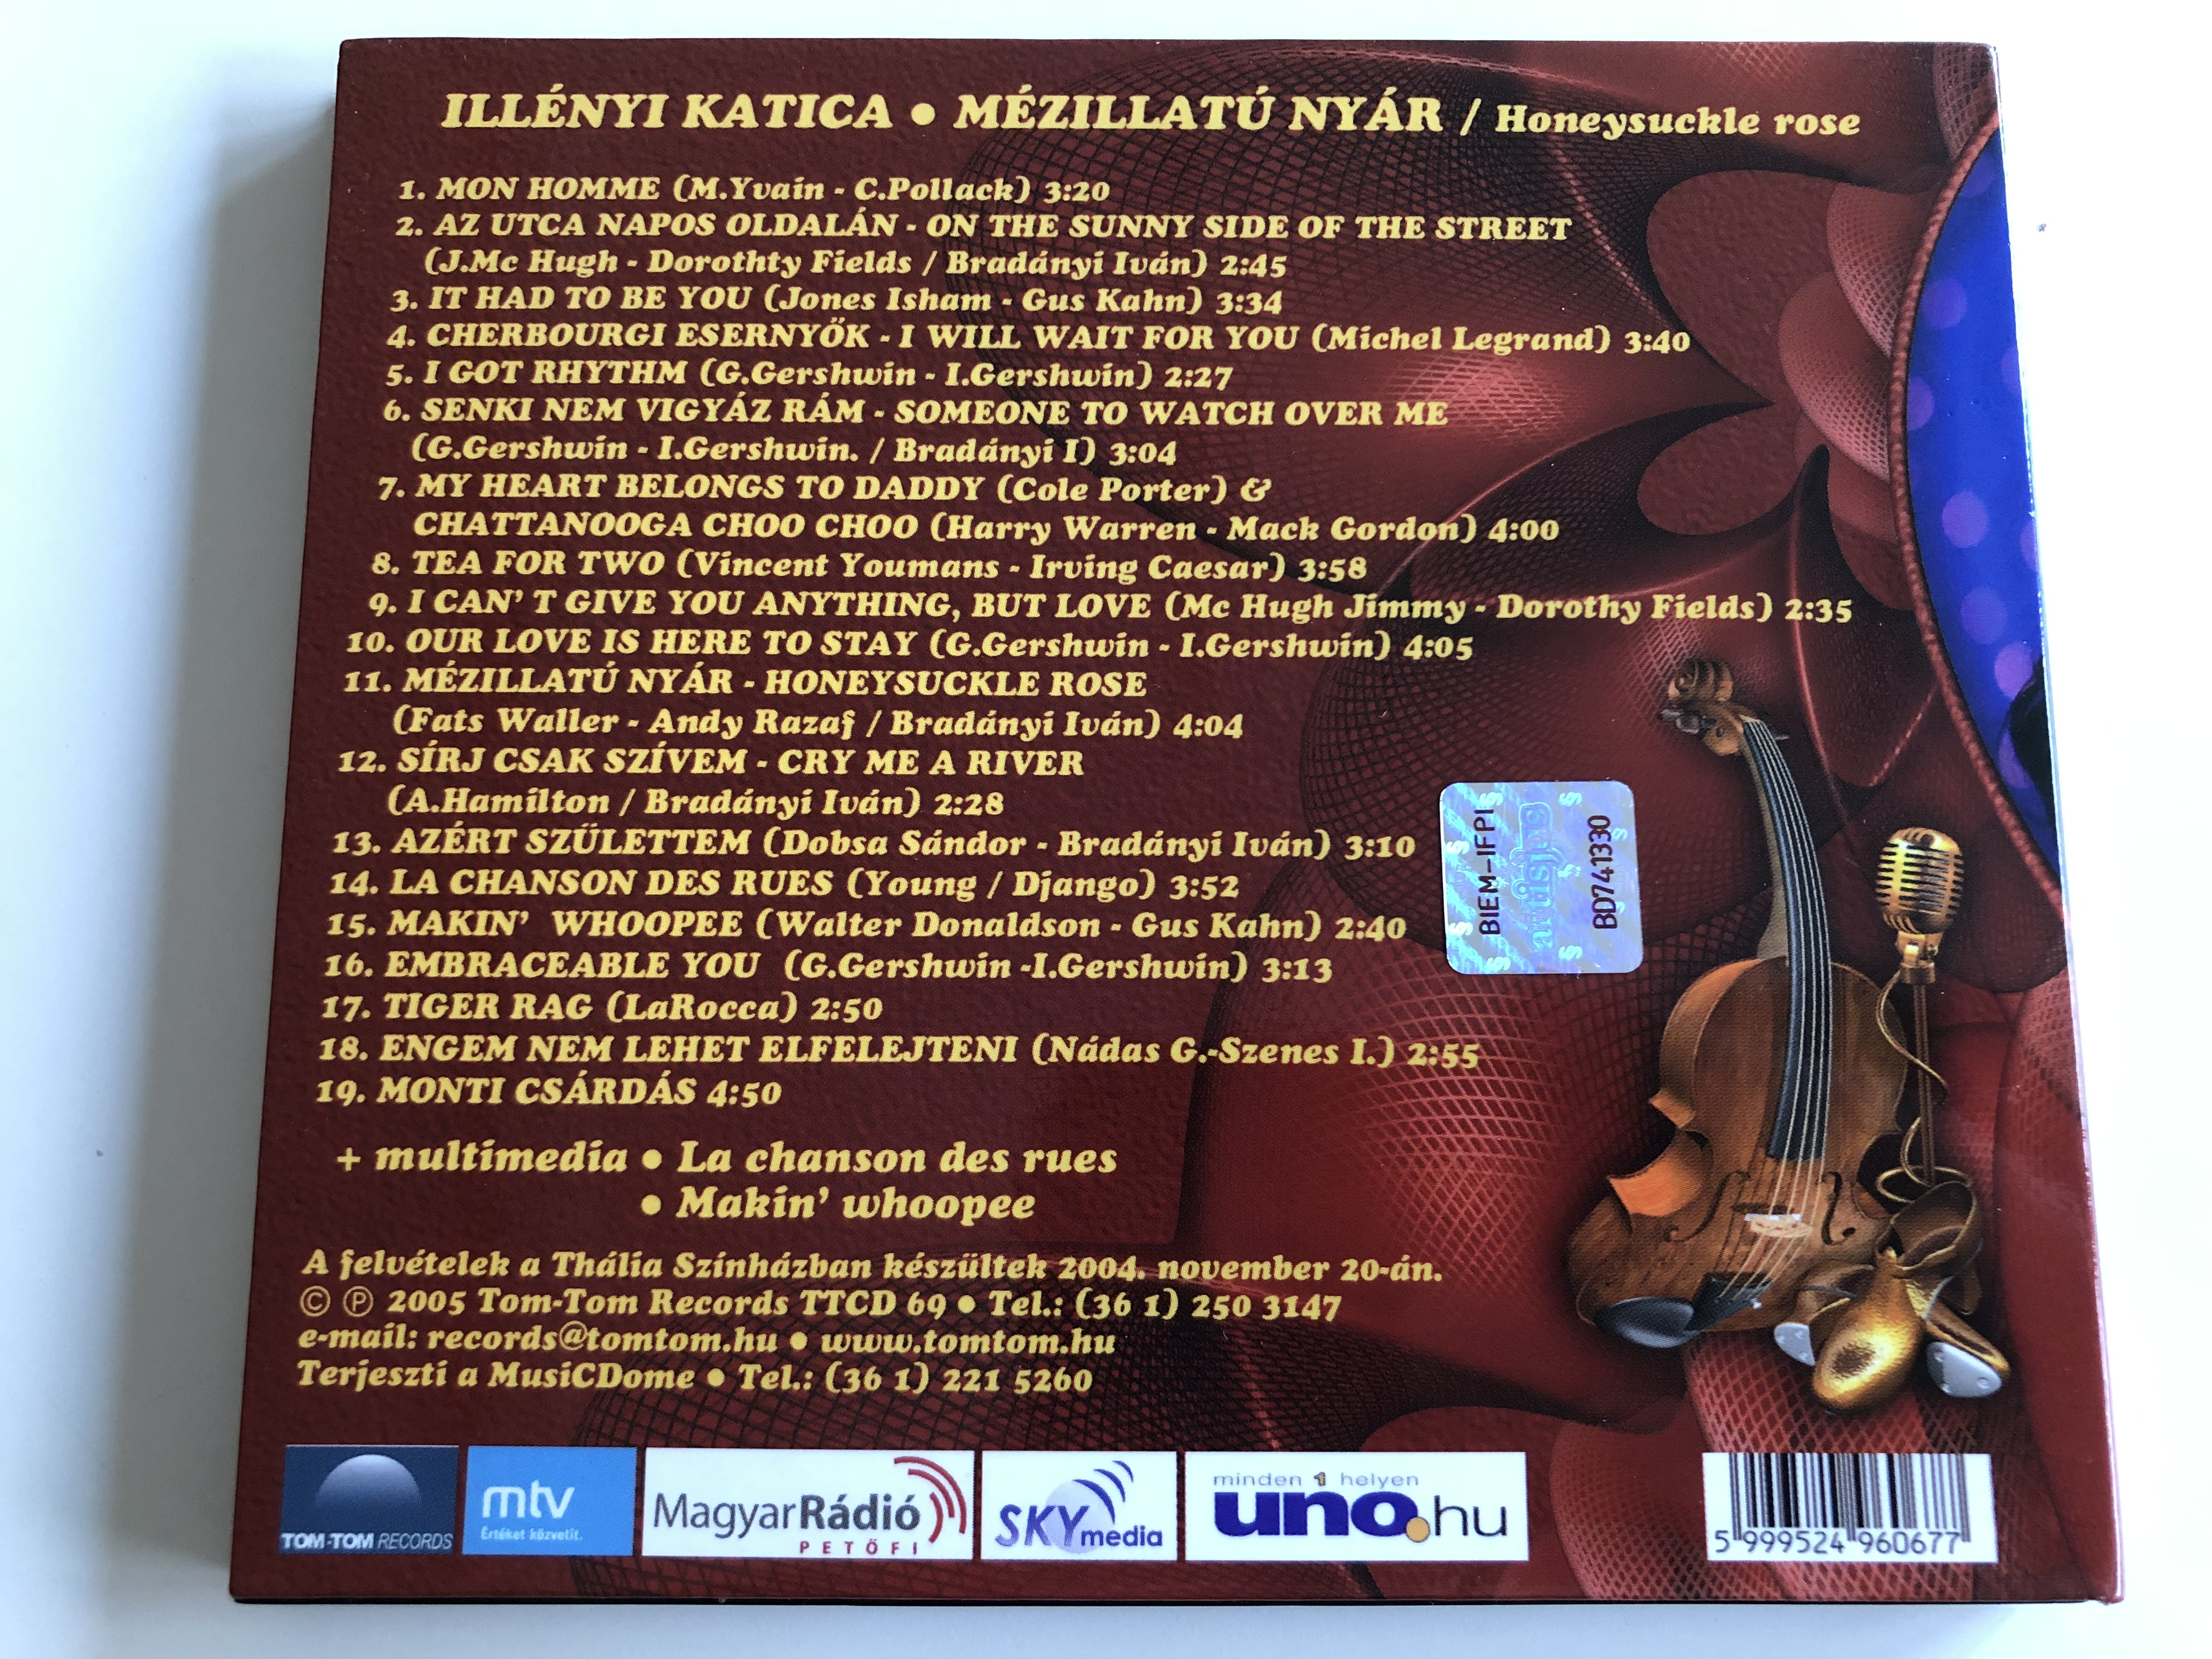 ill-nyi-katica-honeysuckle-rose-m-zillat-ny-r-live-concert-2004-audio-cd-2005-recorded-in-th-lia-theater-tom-tom-records-7-.jpg